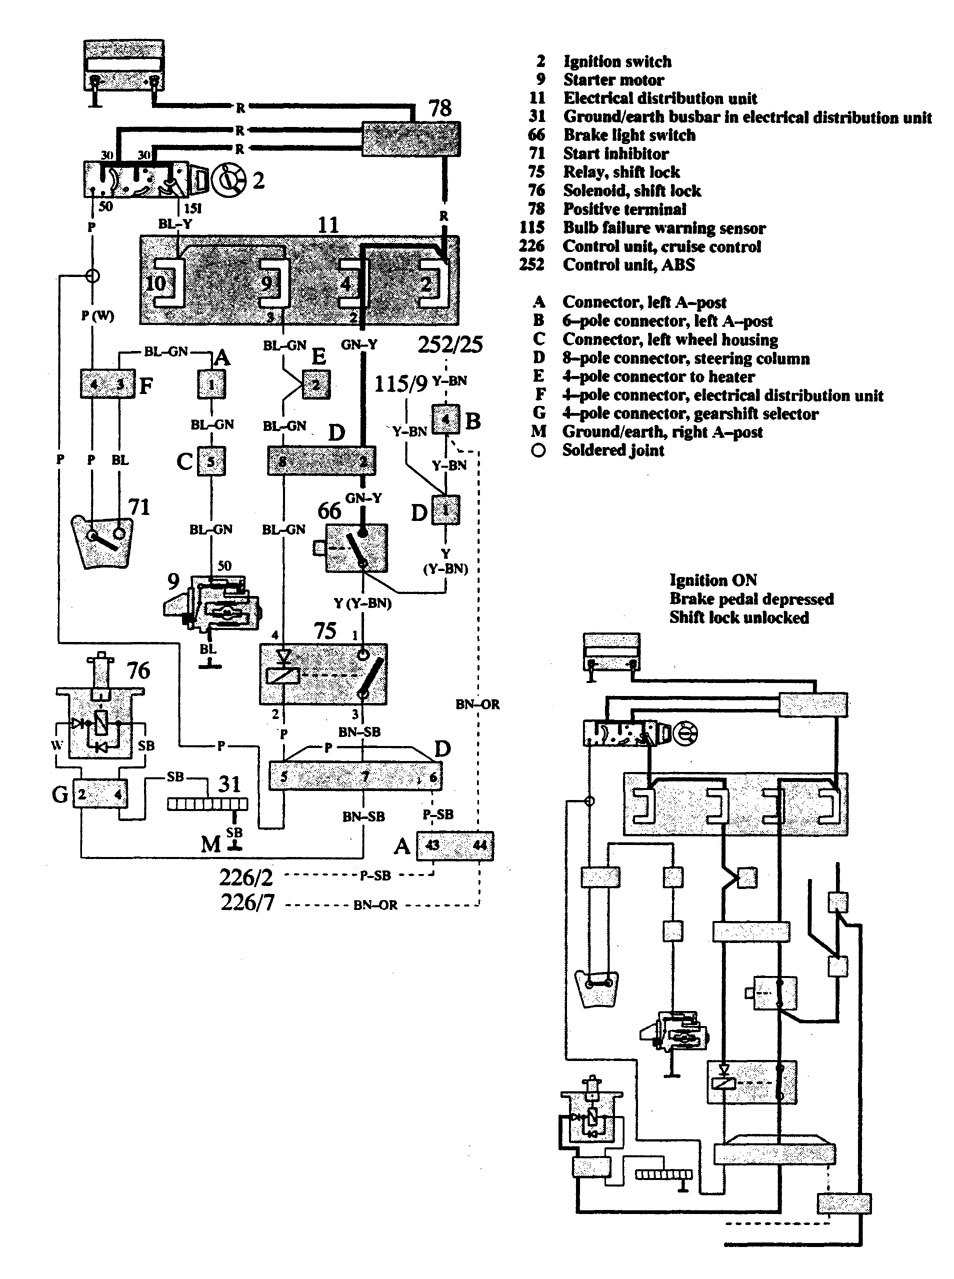 volvo 940 wiring diagram shift interlock 1991 volvo 940 (1991) wiring diagrams shift interlock carknowledge volvo 940 wiring diagram at panicattacktreatment.co